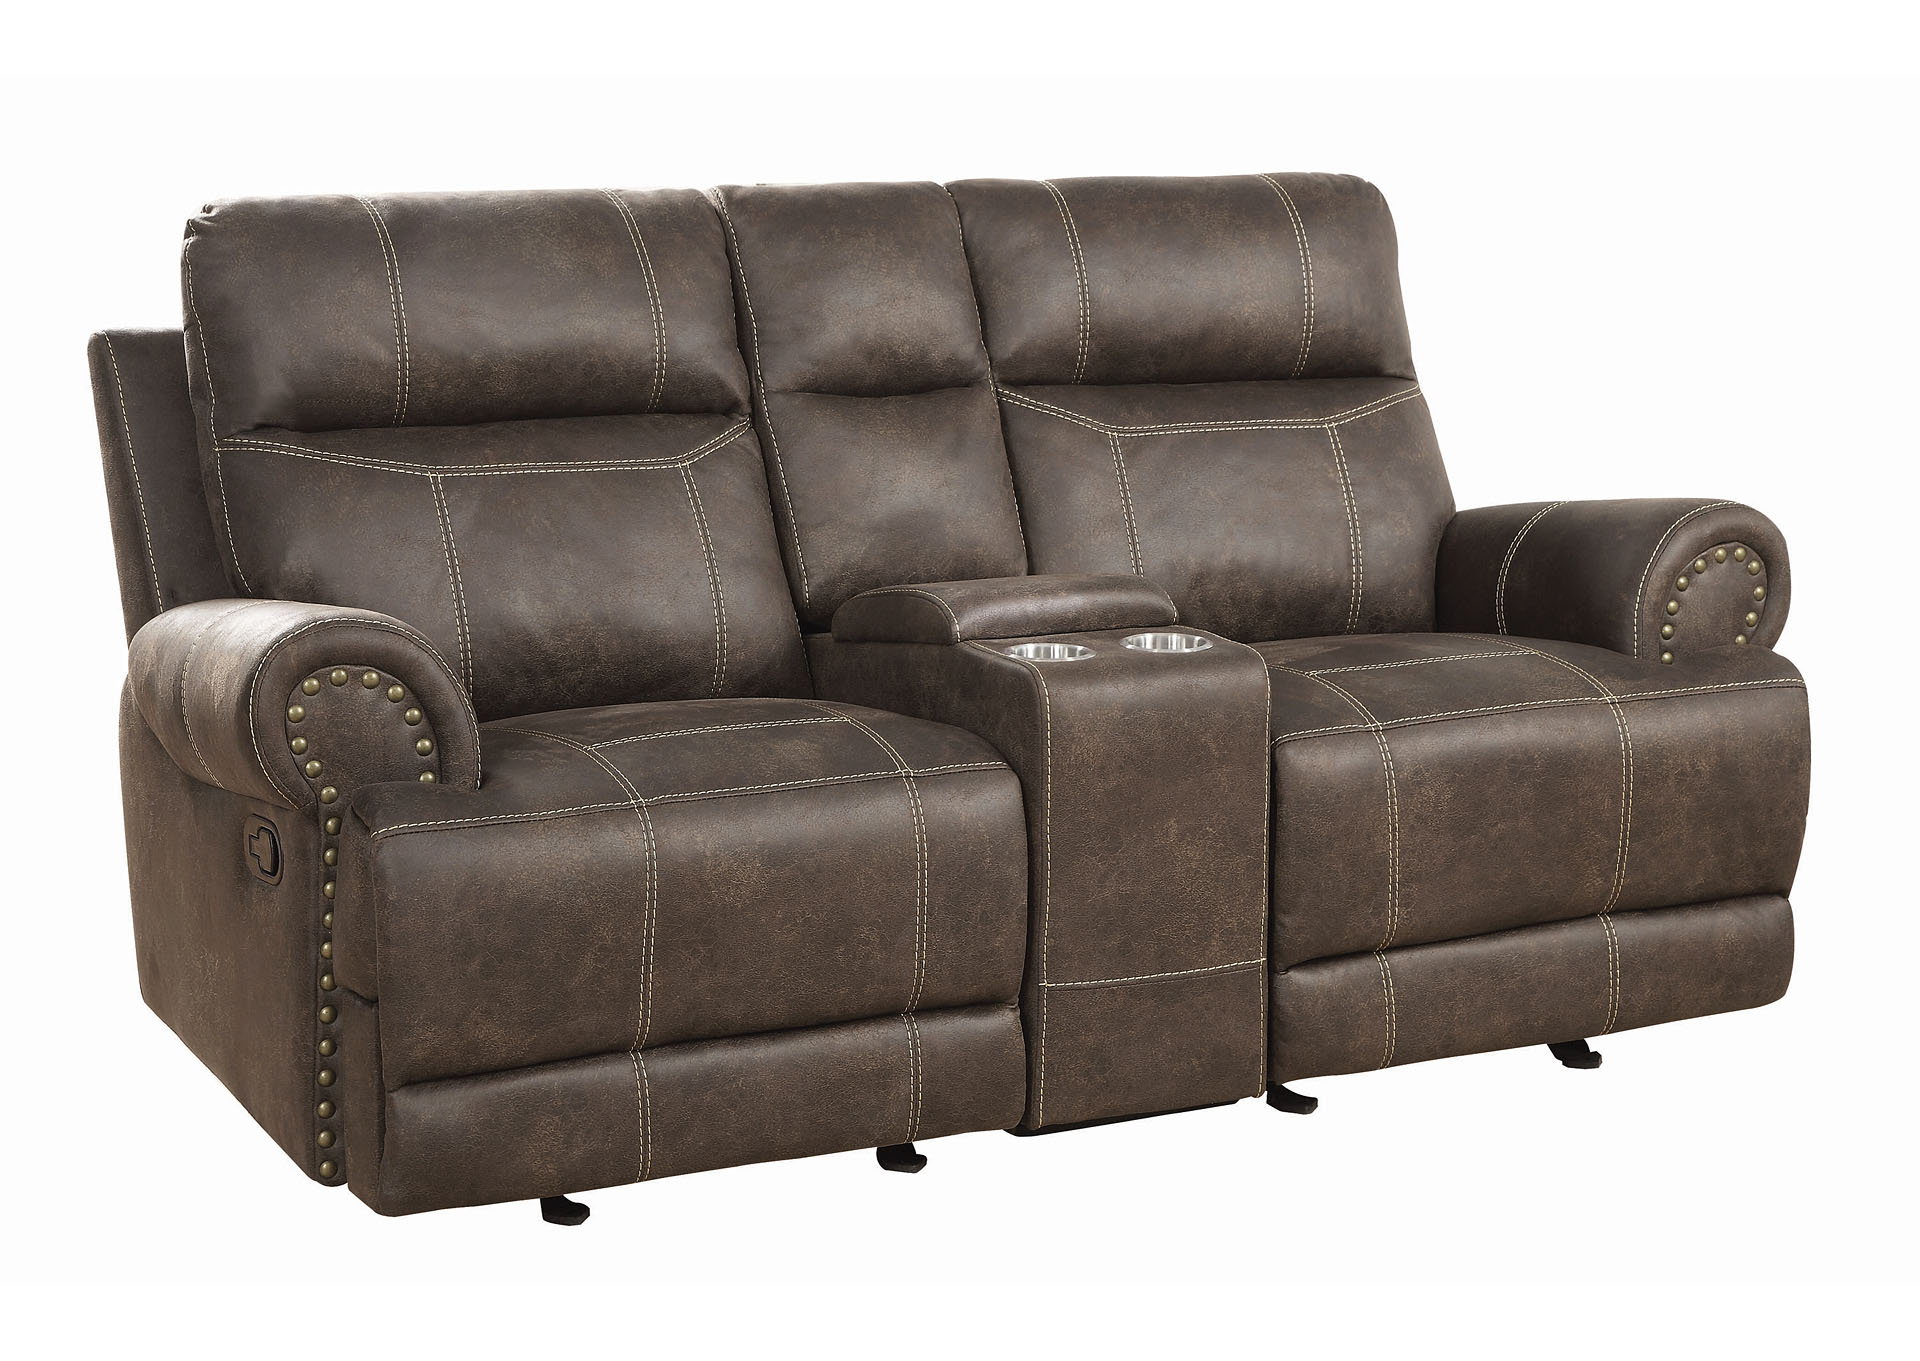 Taupe Glider Loveseat,Coaster Furniture